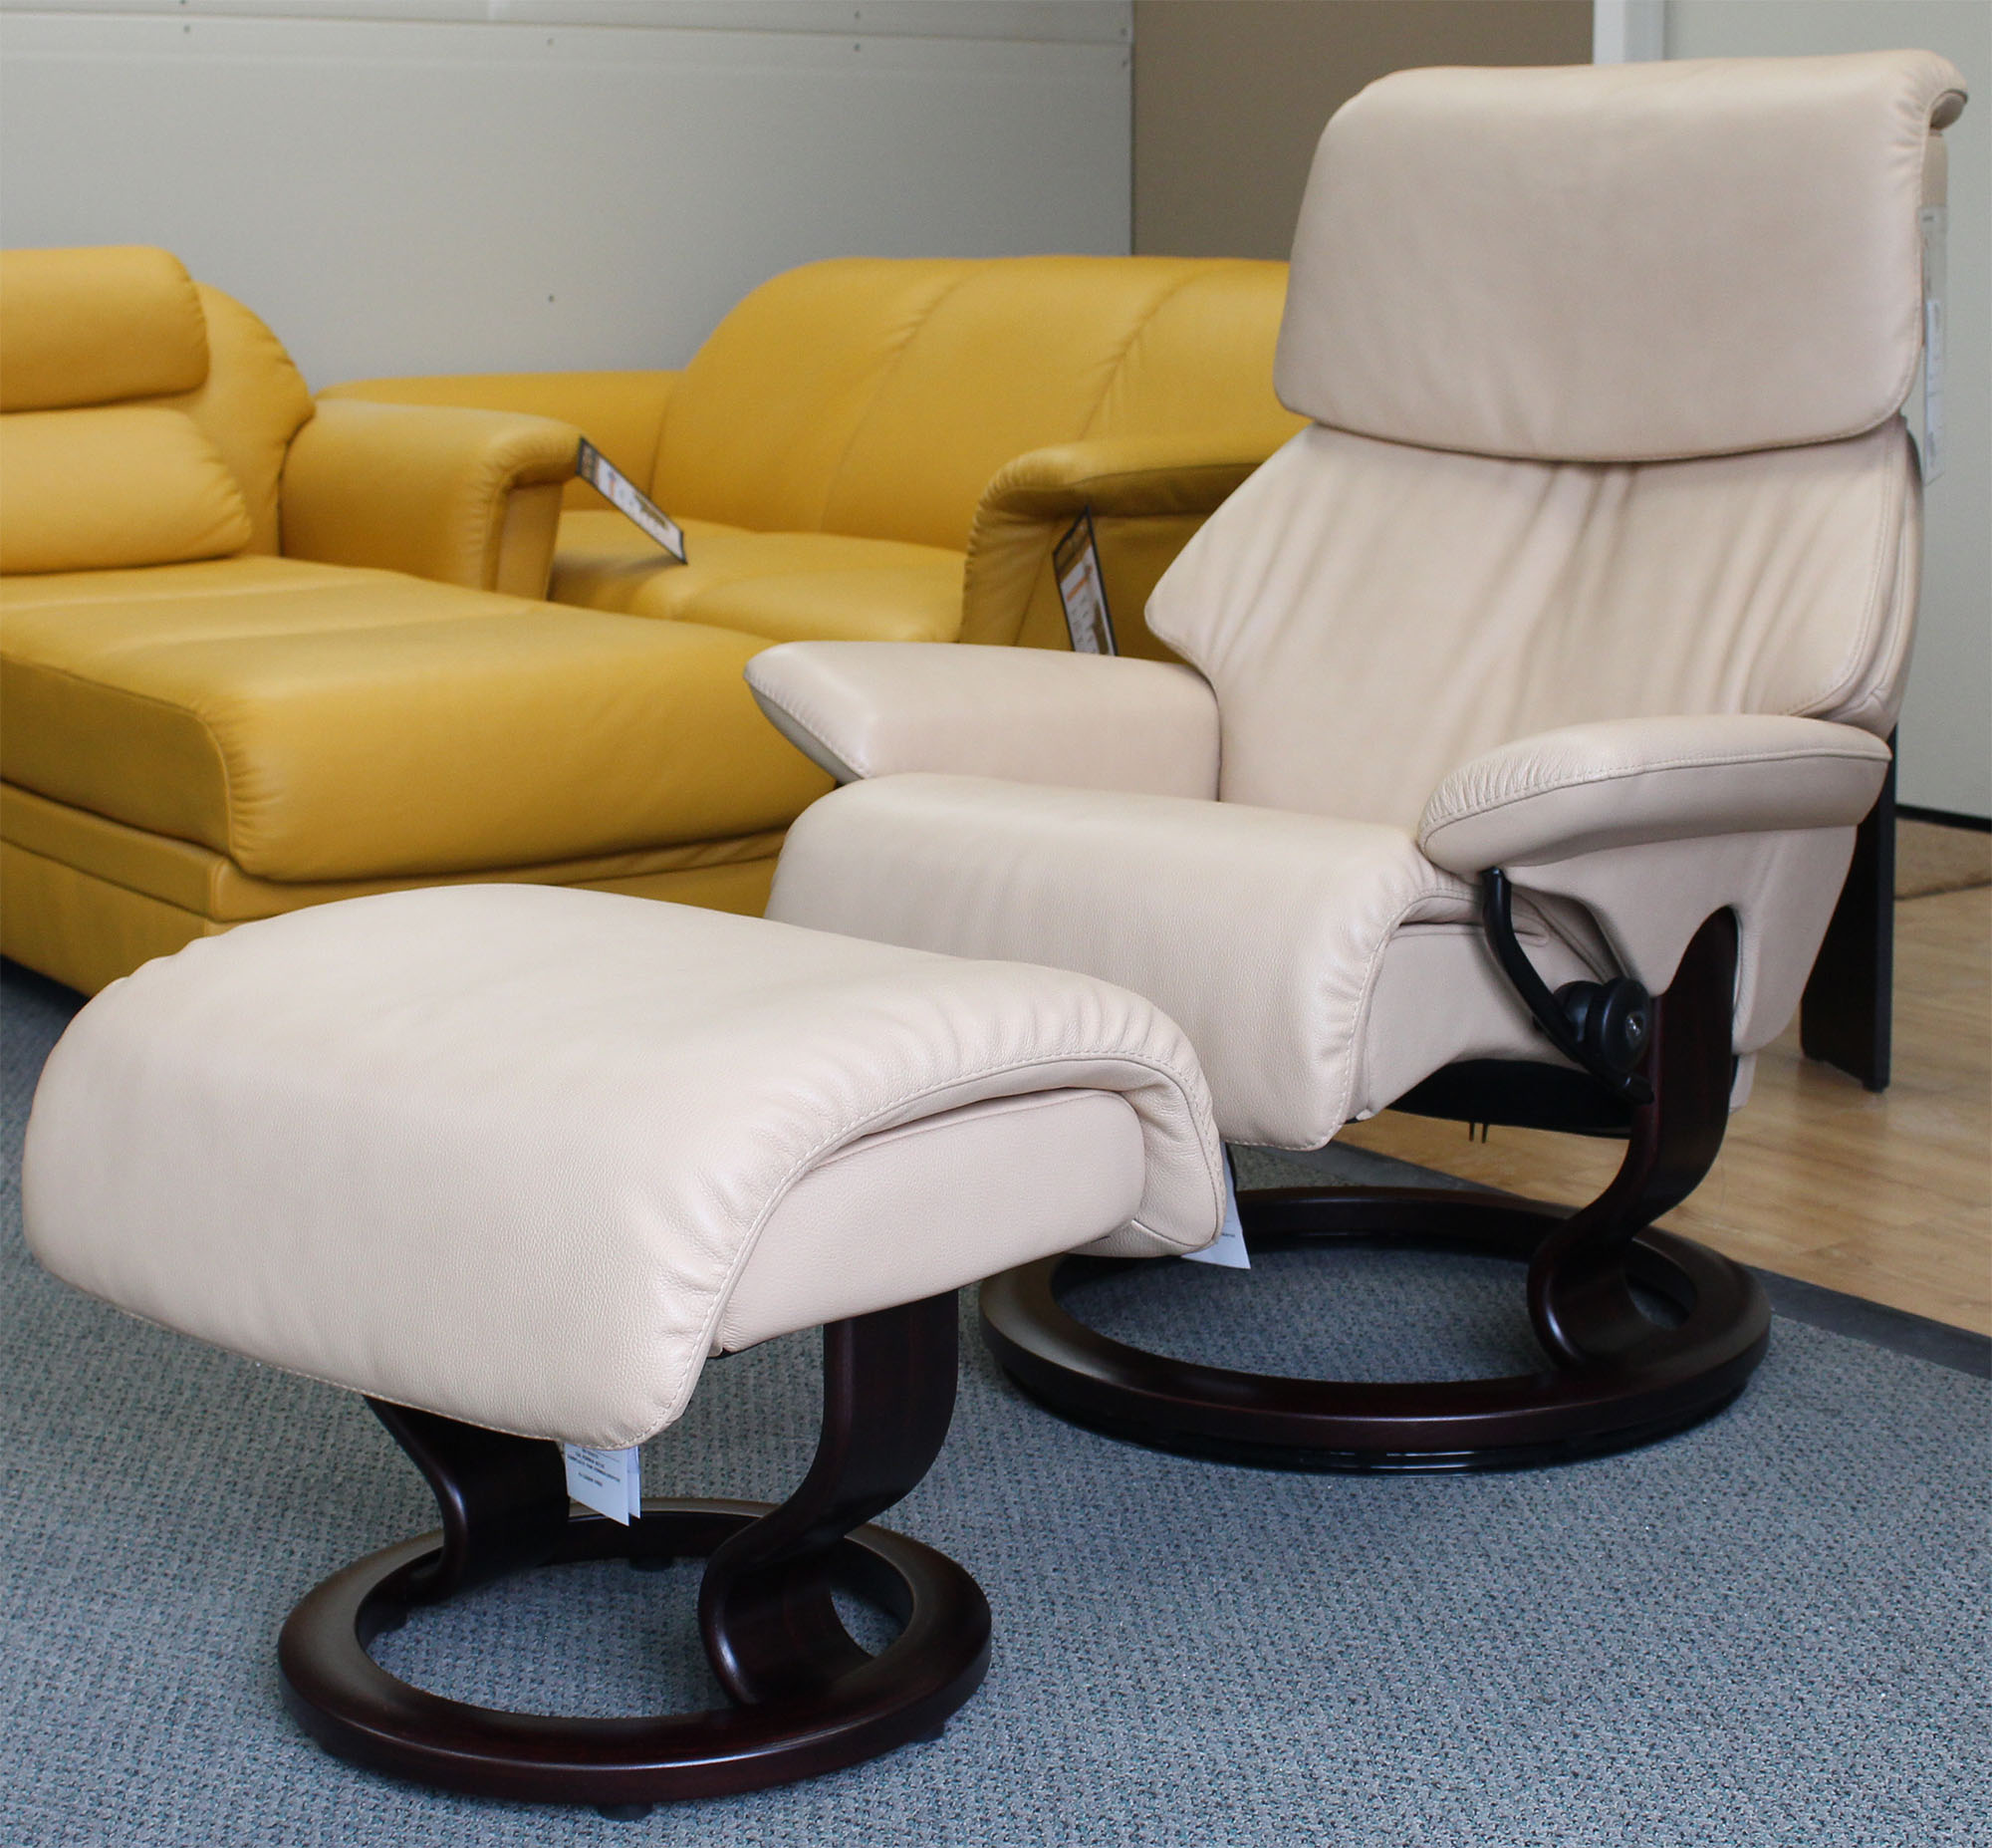 Stressless Sessel Sunrise.html Stressless Dream